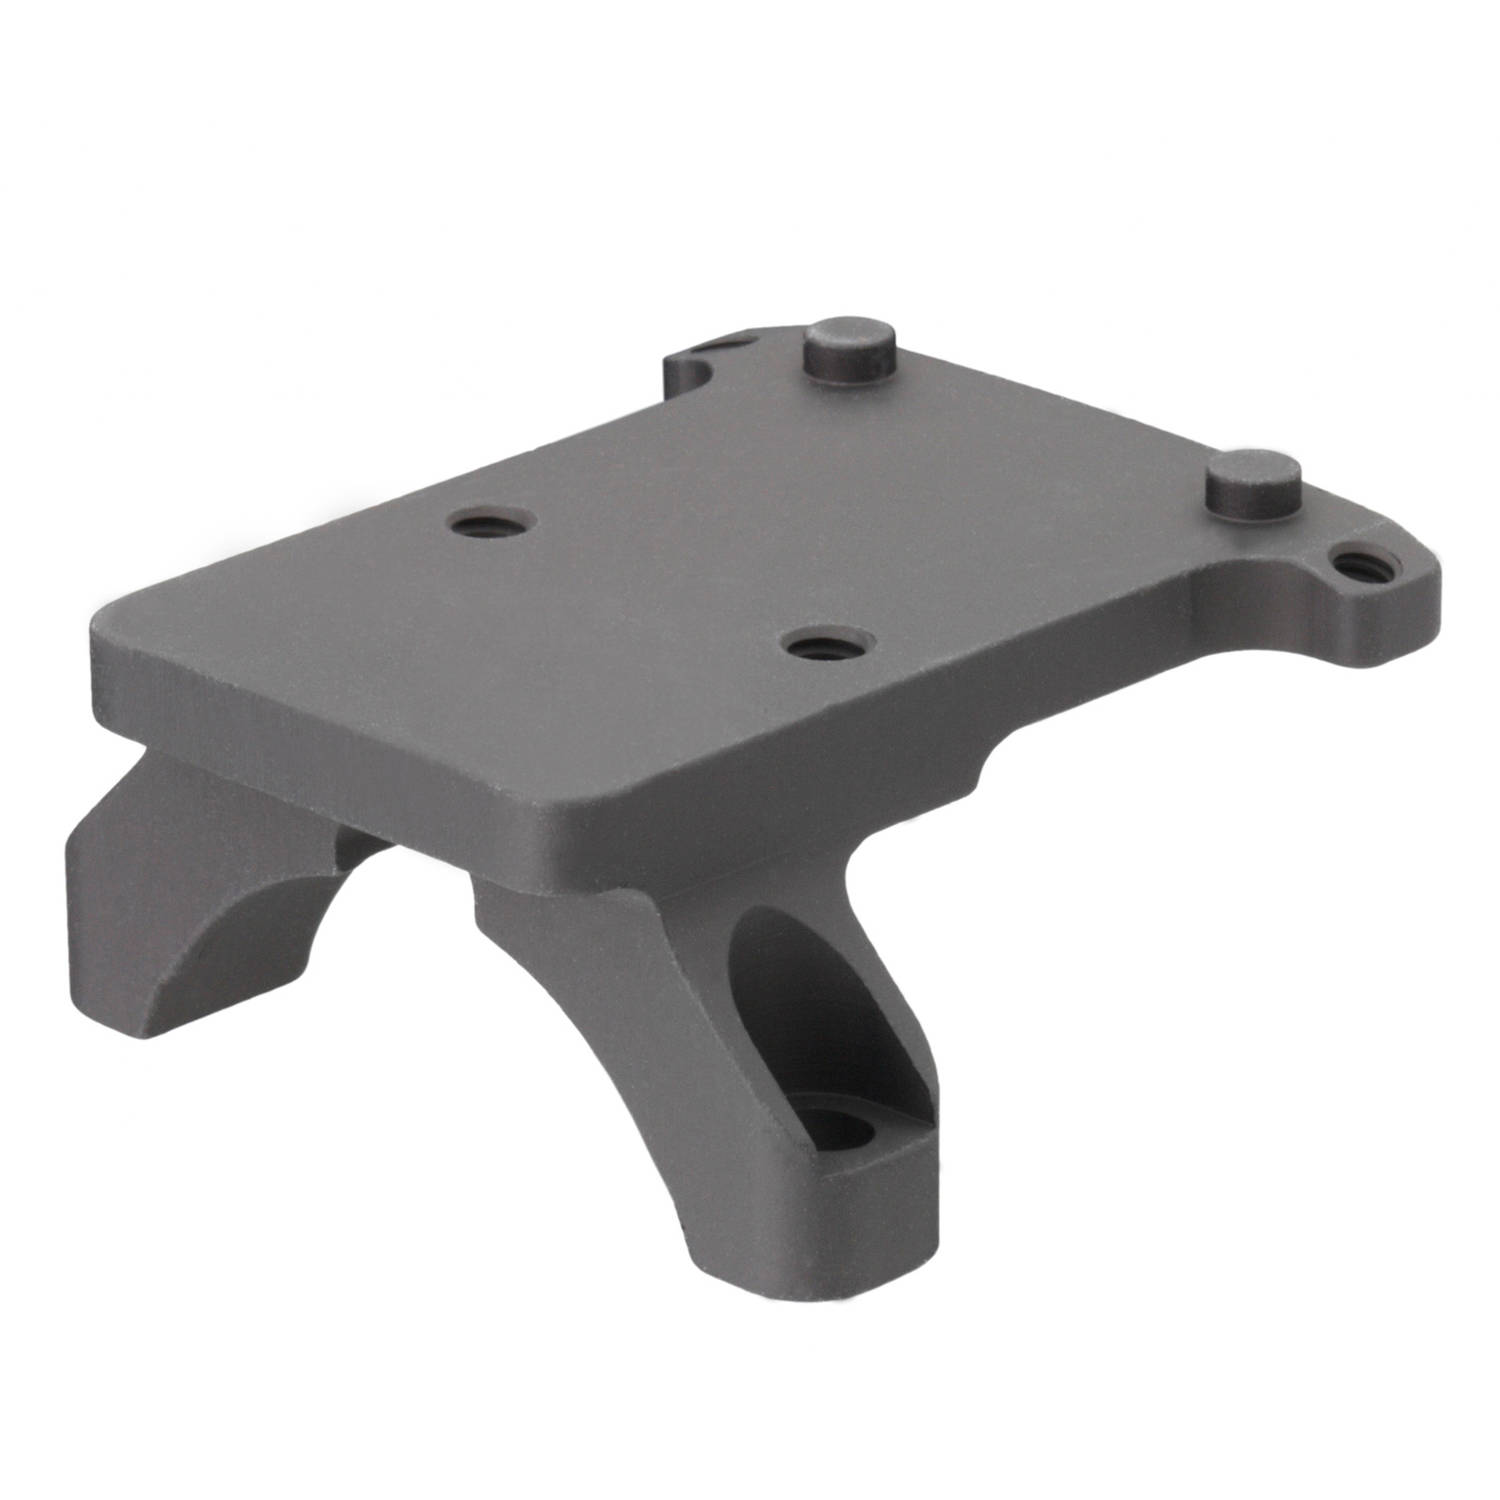 Trijicon Mount ACOG Adaptor Plate, For Red Dot Sights, Matte